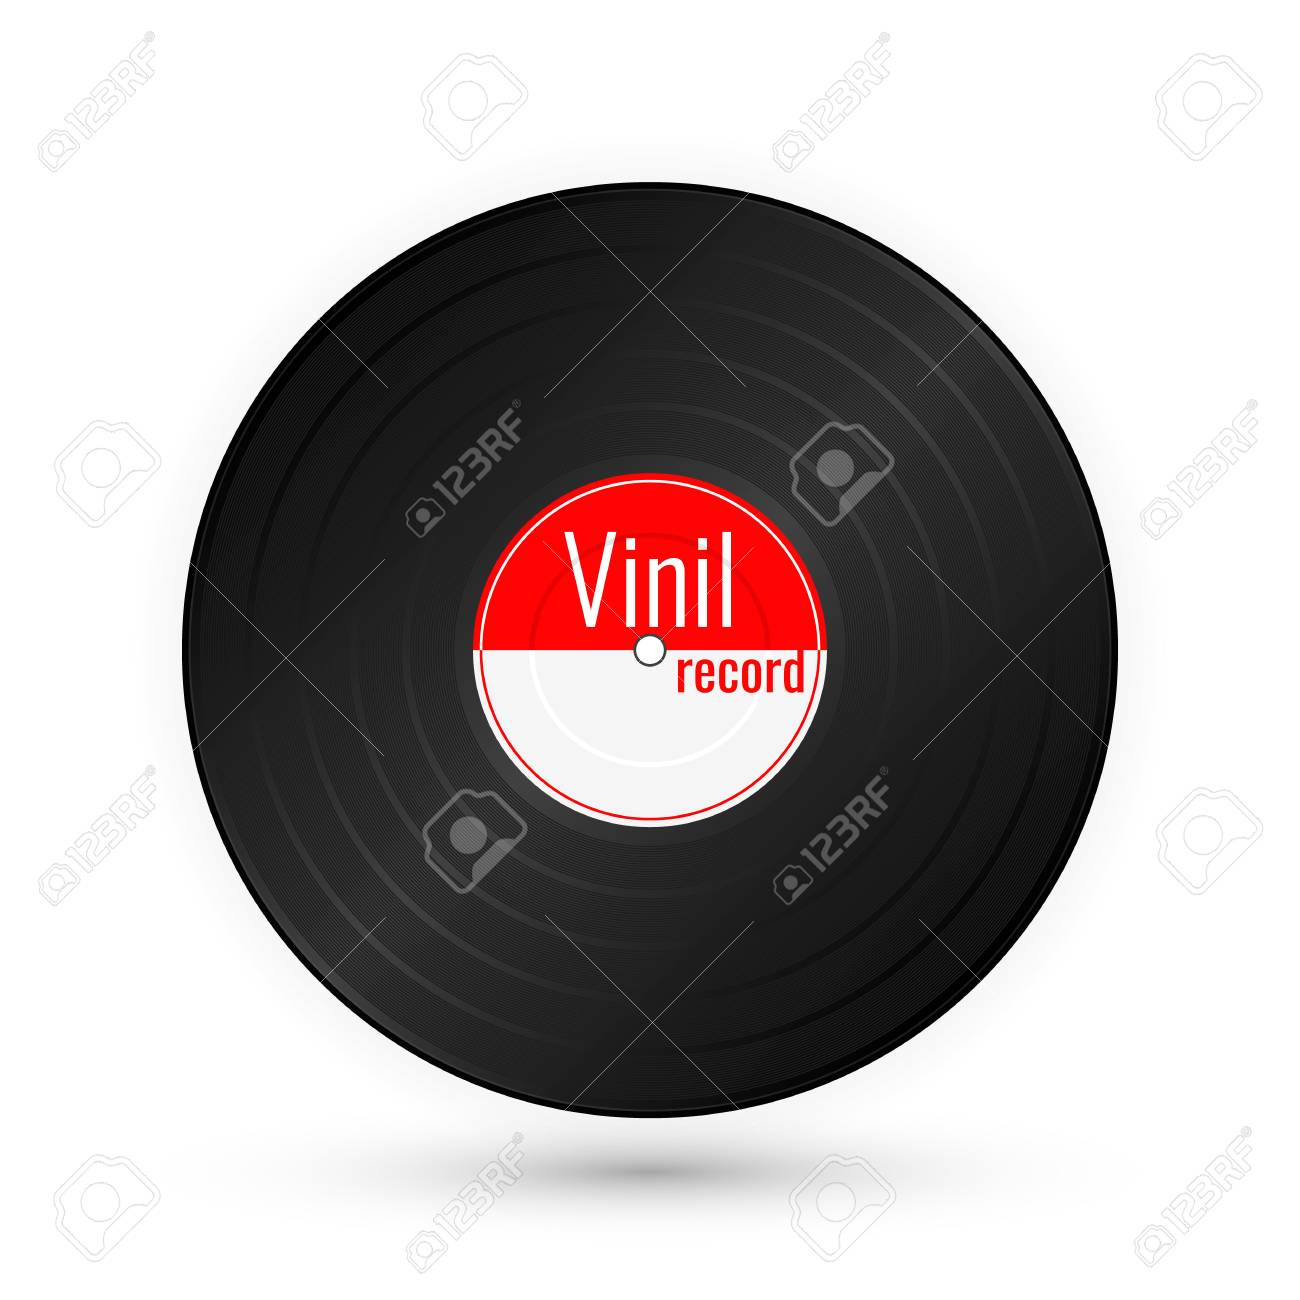 vinyl music record vintage gramophone disc vector illustration royalty free cliparts vectors and stock illustration image 124852769 123rf com